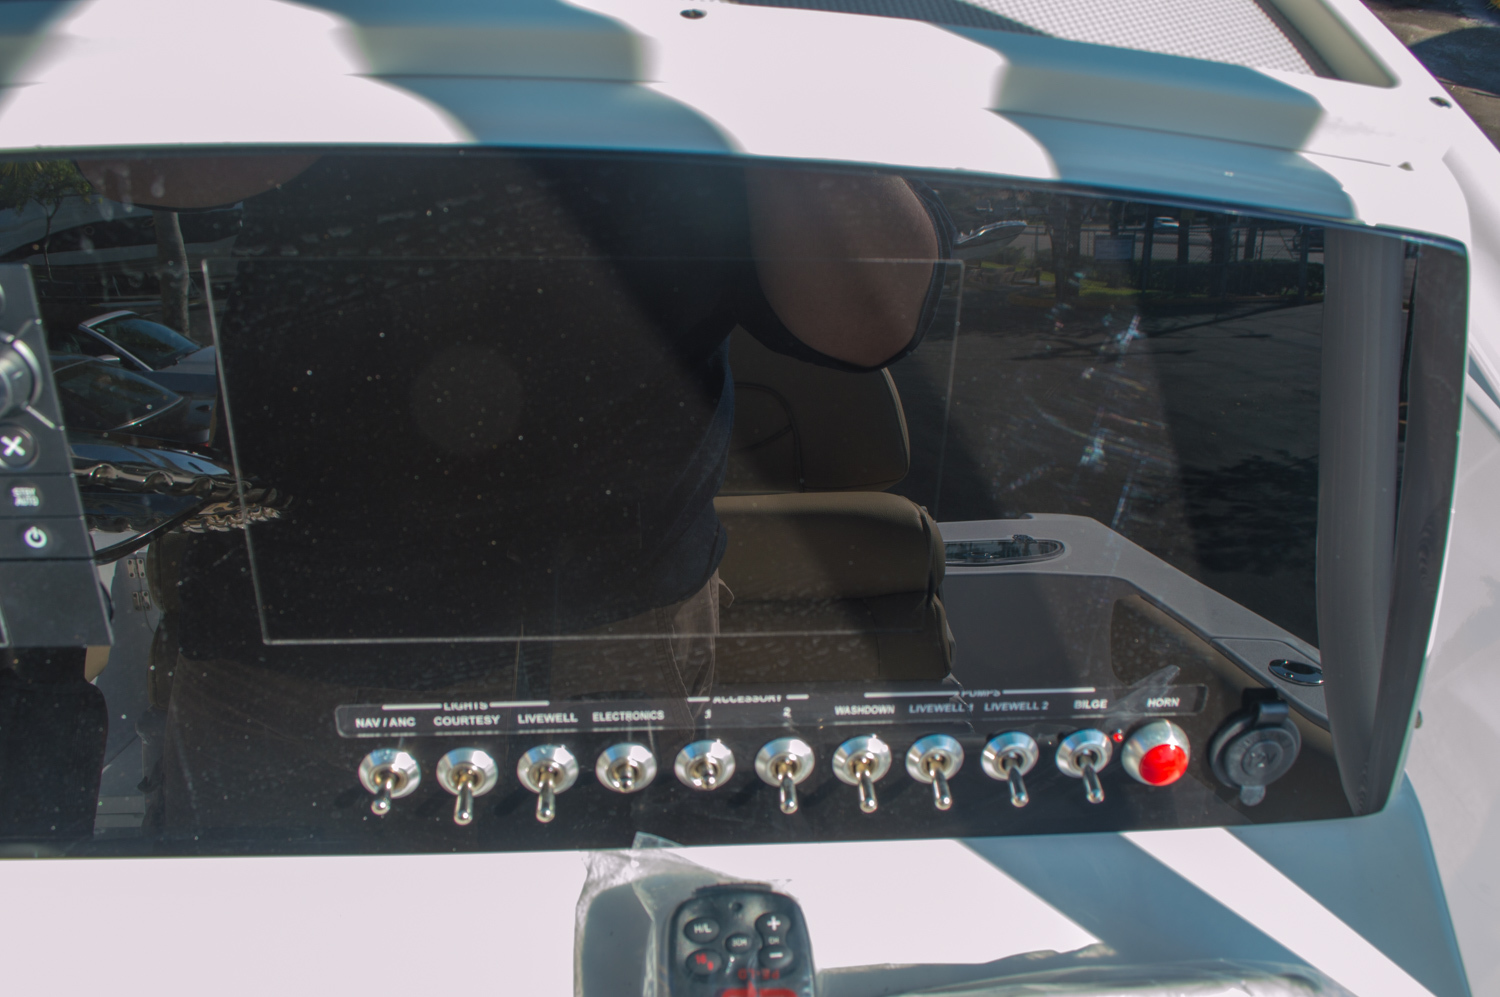 Thumbnail 30 for New 2016 Sportsman Open 212 Center Console boat for sale in West Palm Beach, FL